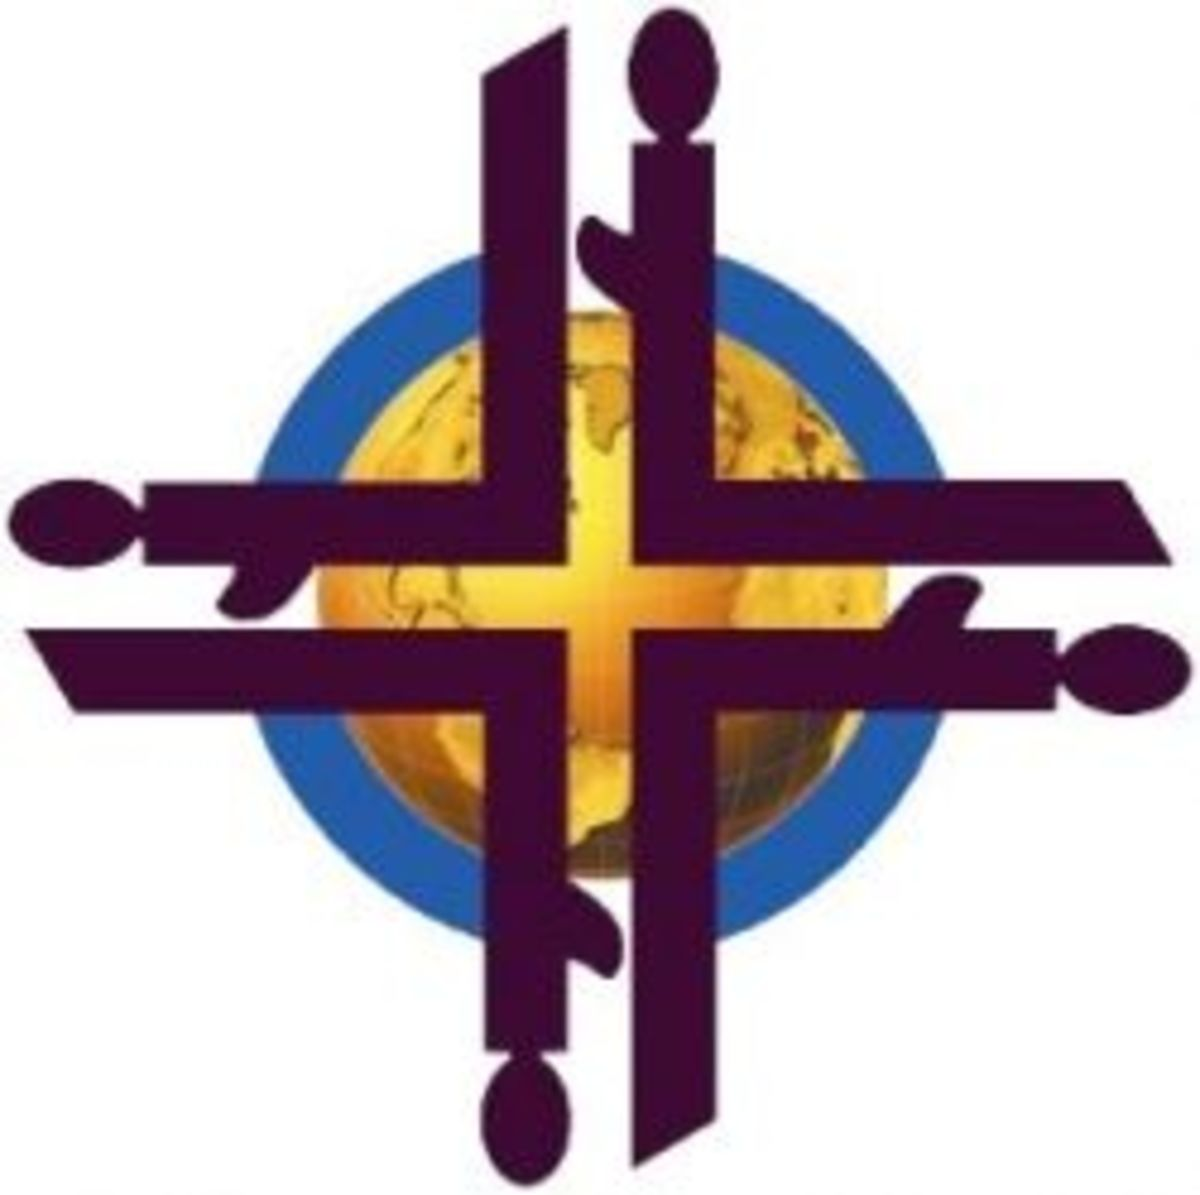 The World Day of Prayer logo